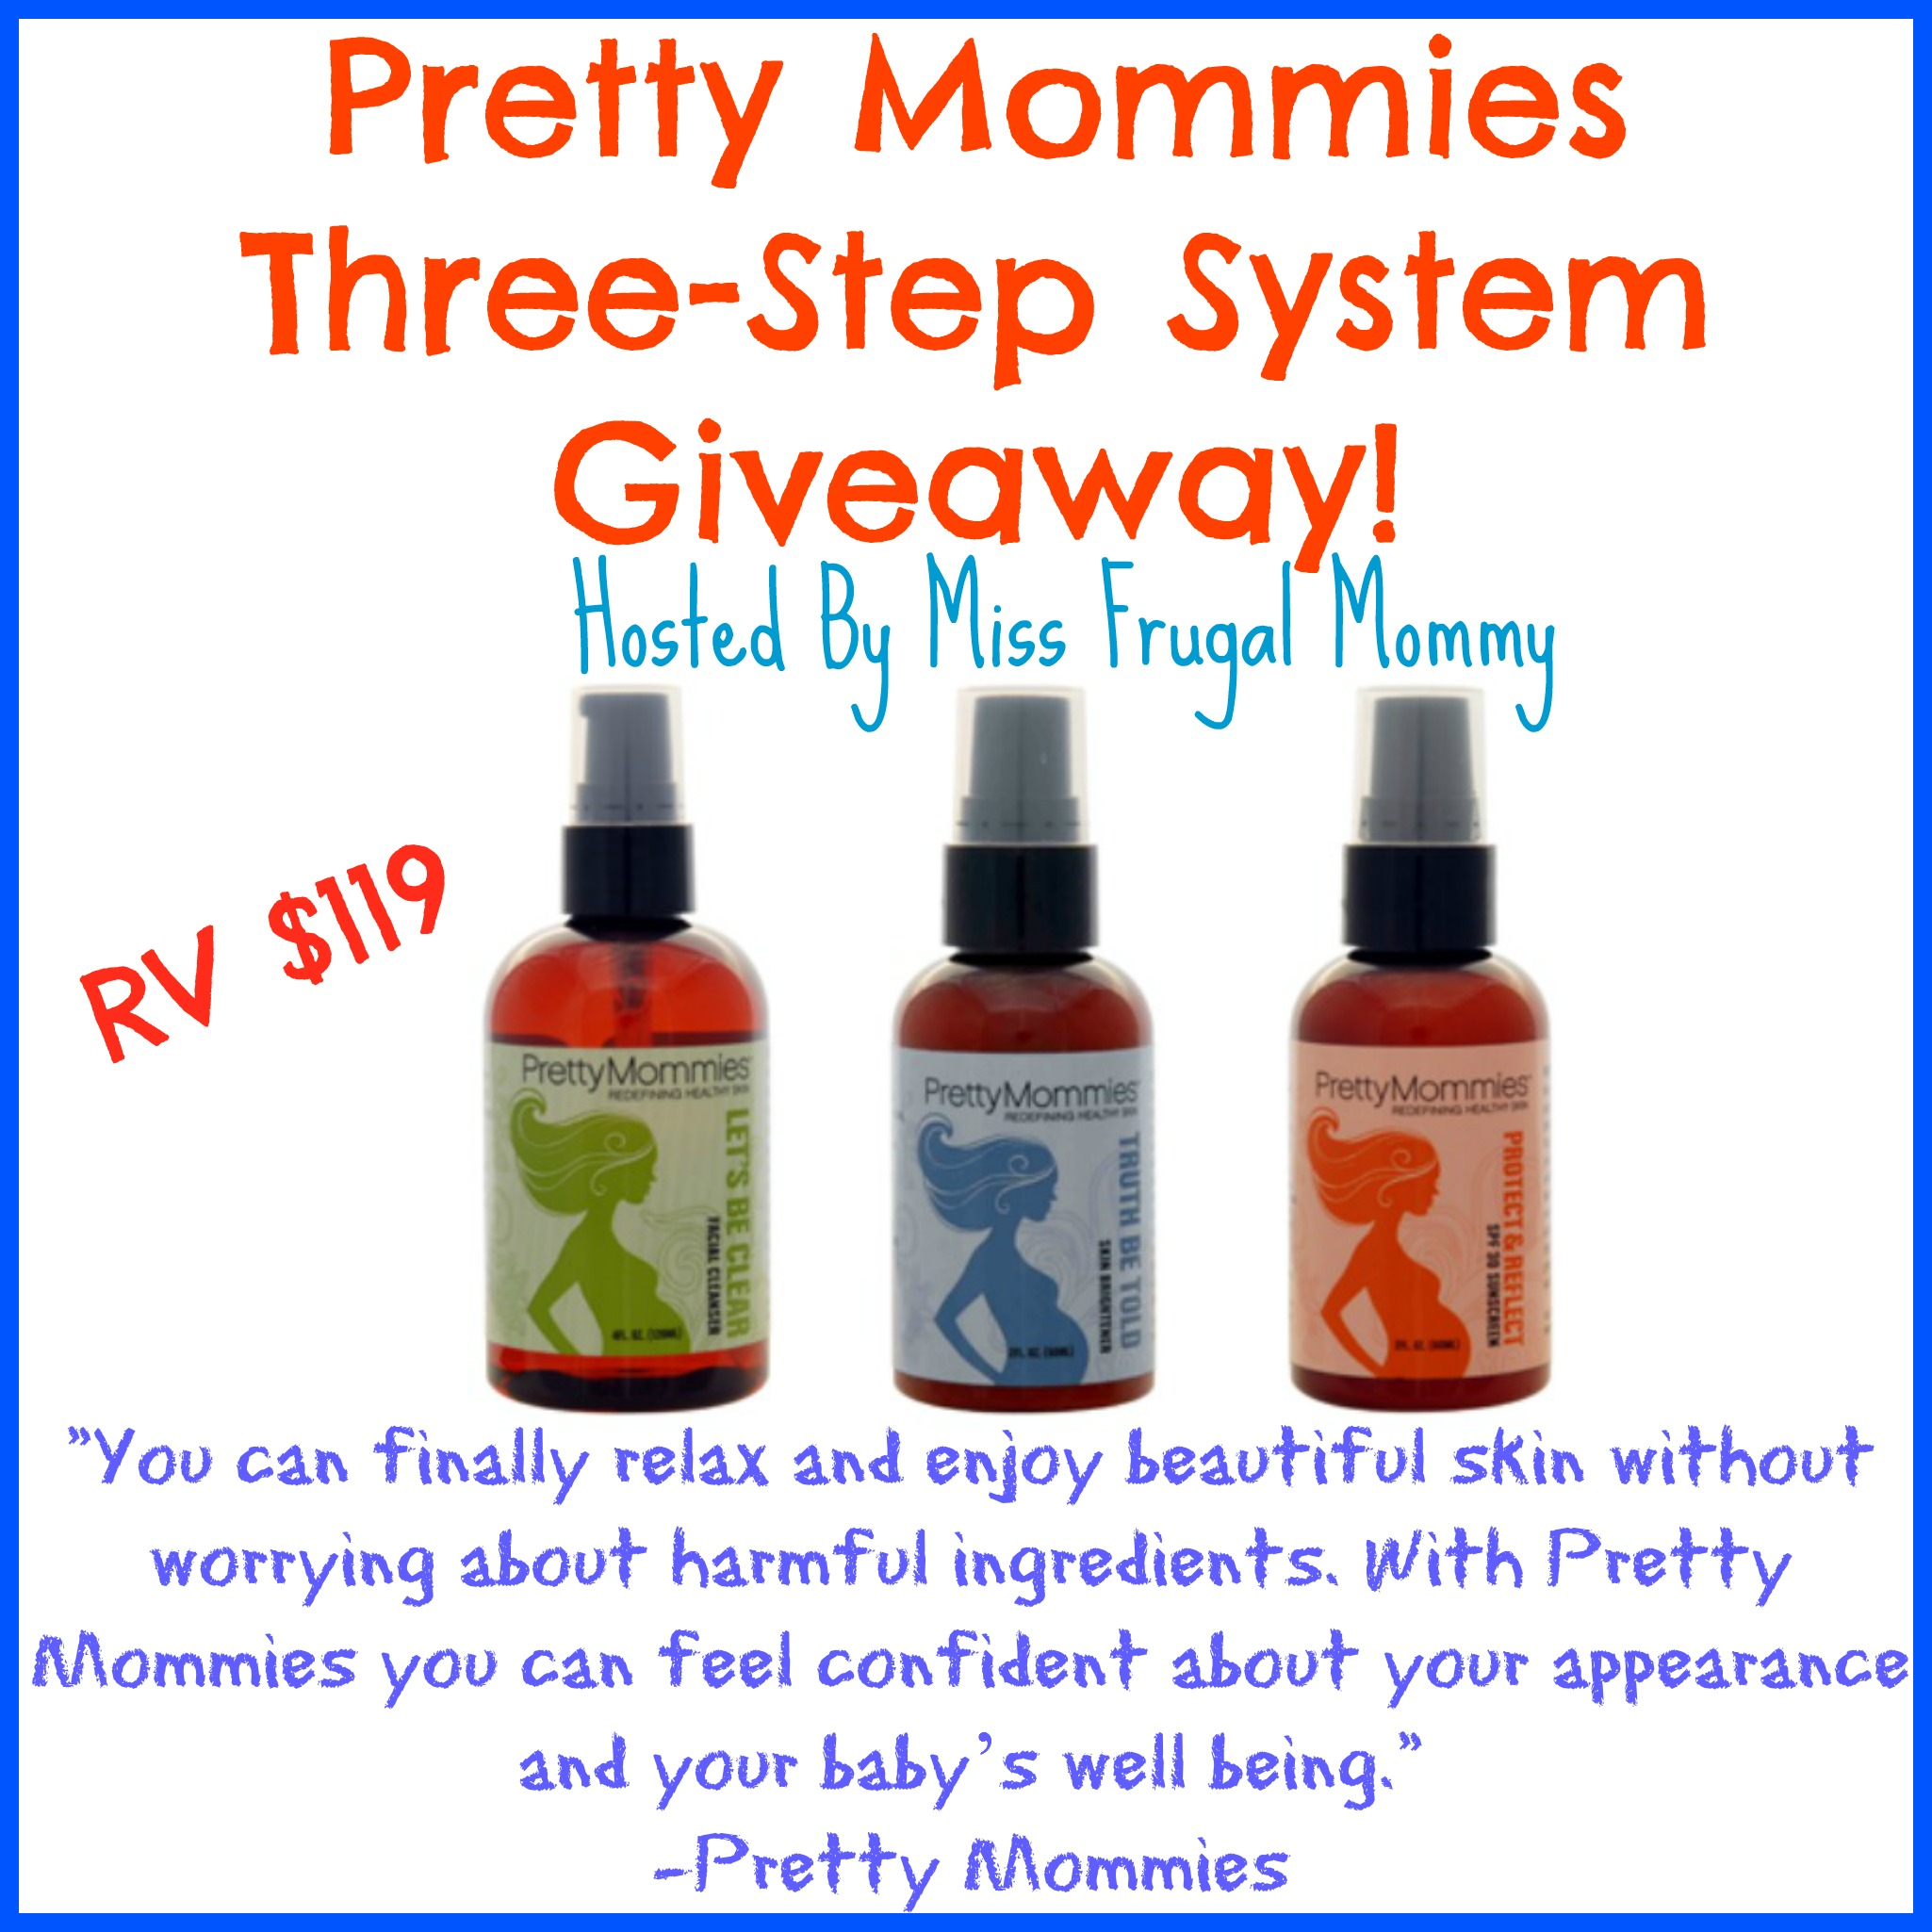 Pretty Mommies Skin Care Set Giveaway ~ Ends 5/1